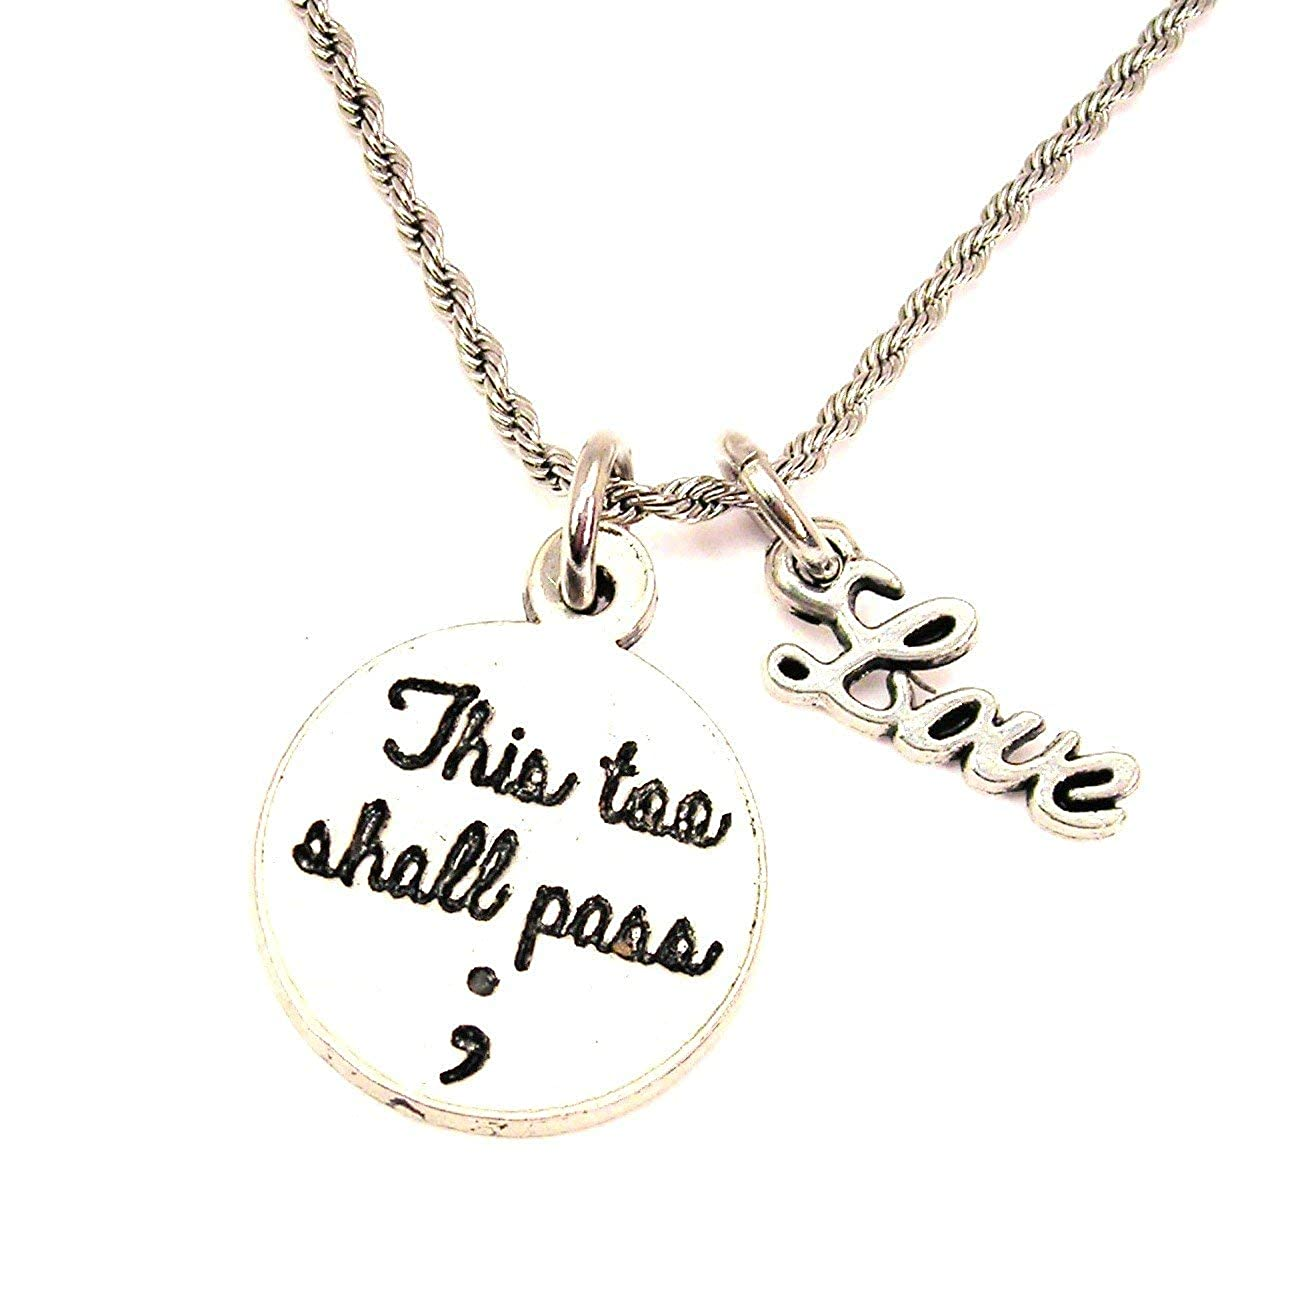 ChubbyChicoCharms This Too Shall Pass ; Stainless Steel Rope Chain Necklace with White Crystal Accent